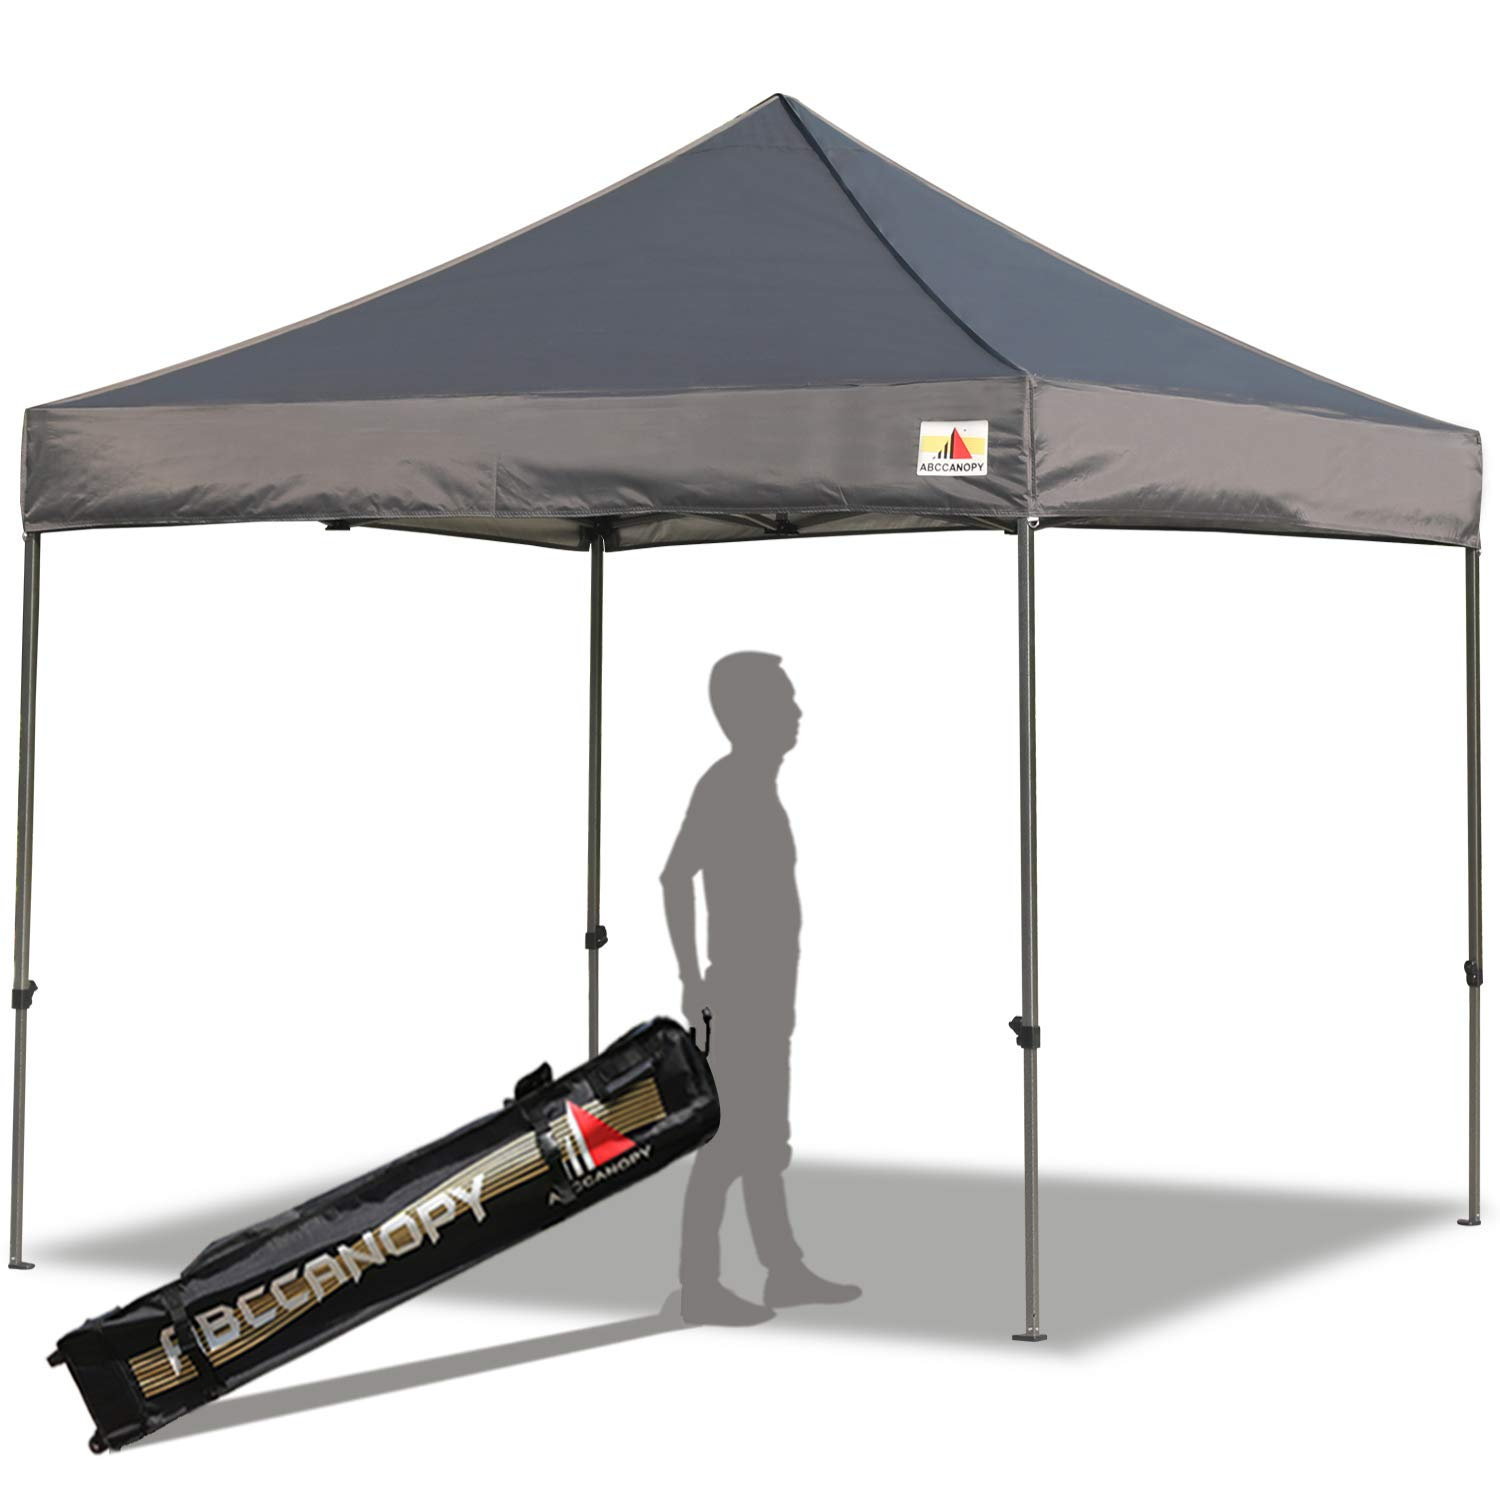 ABCCANOPY Pop up Canopy Tent Commercial Instant Shelter with Wheeled Carry Bag, 10x10 FT Dark Gray